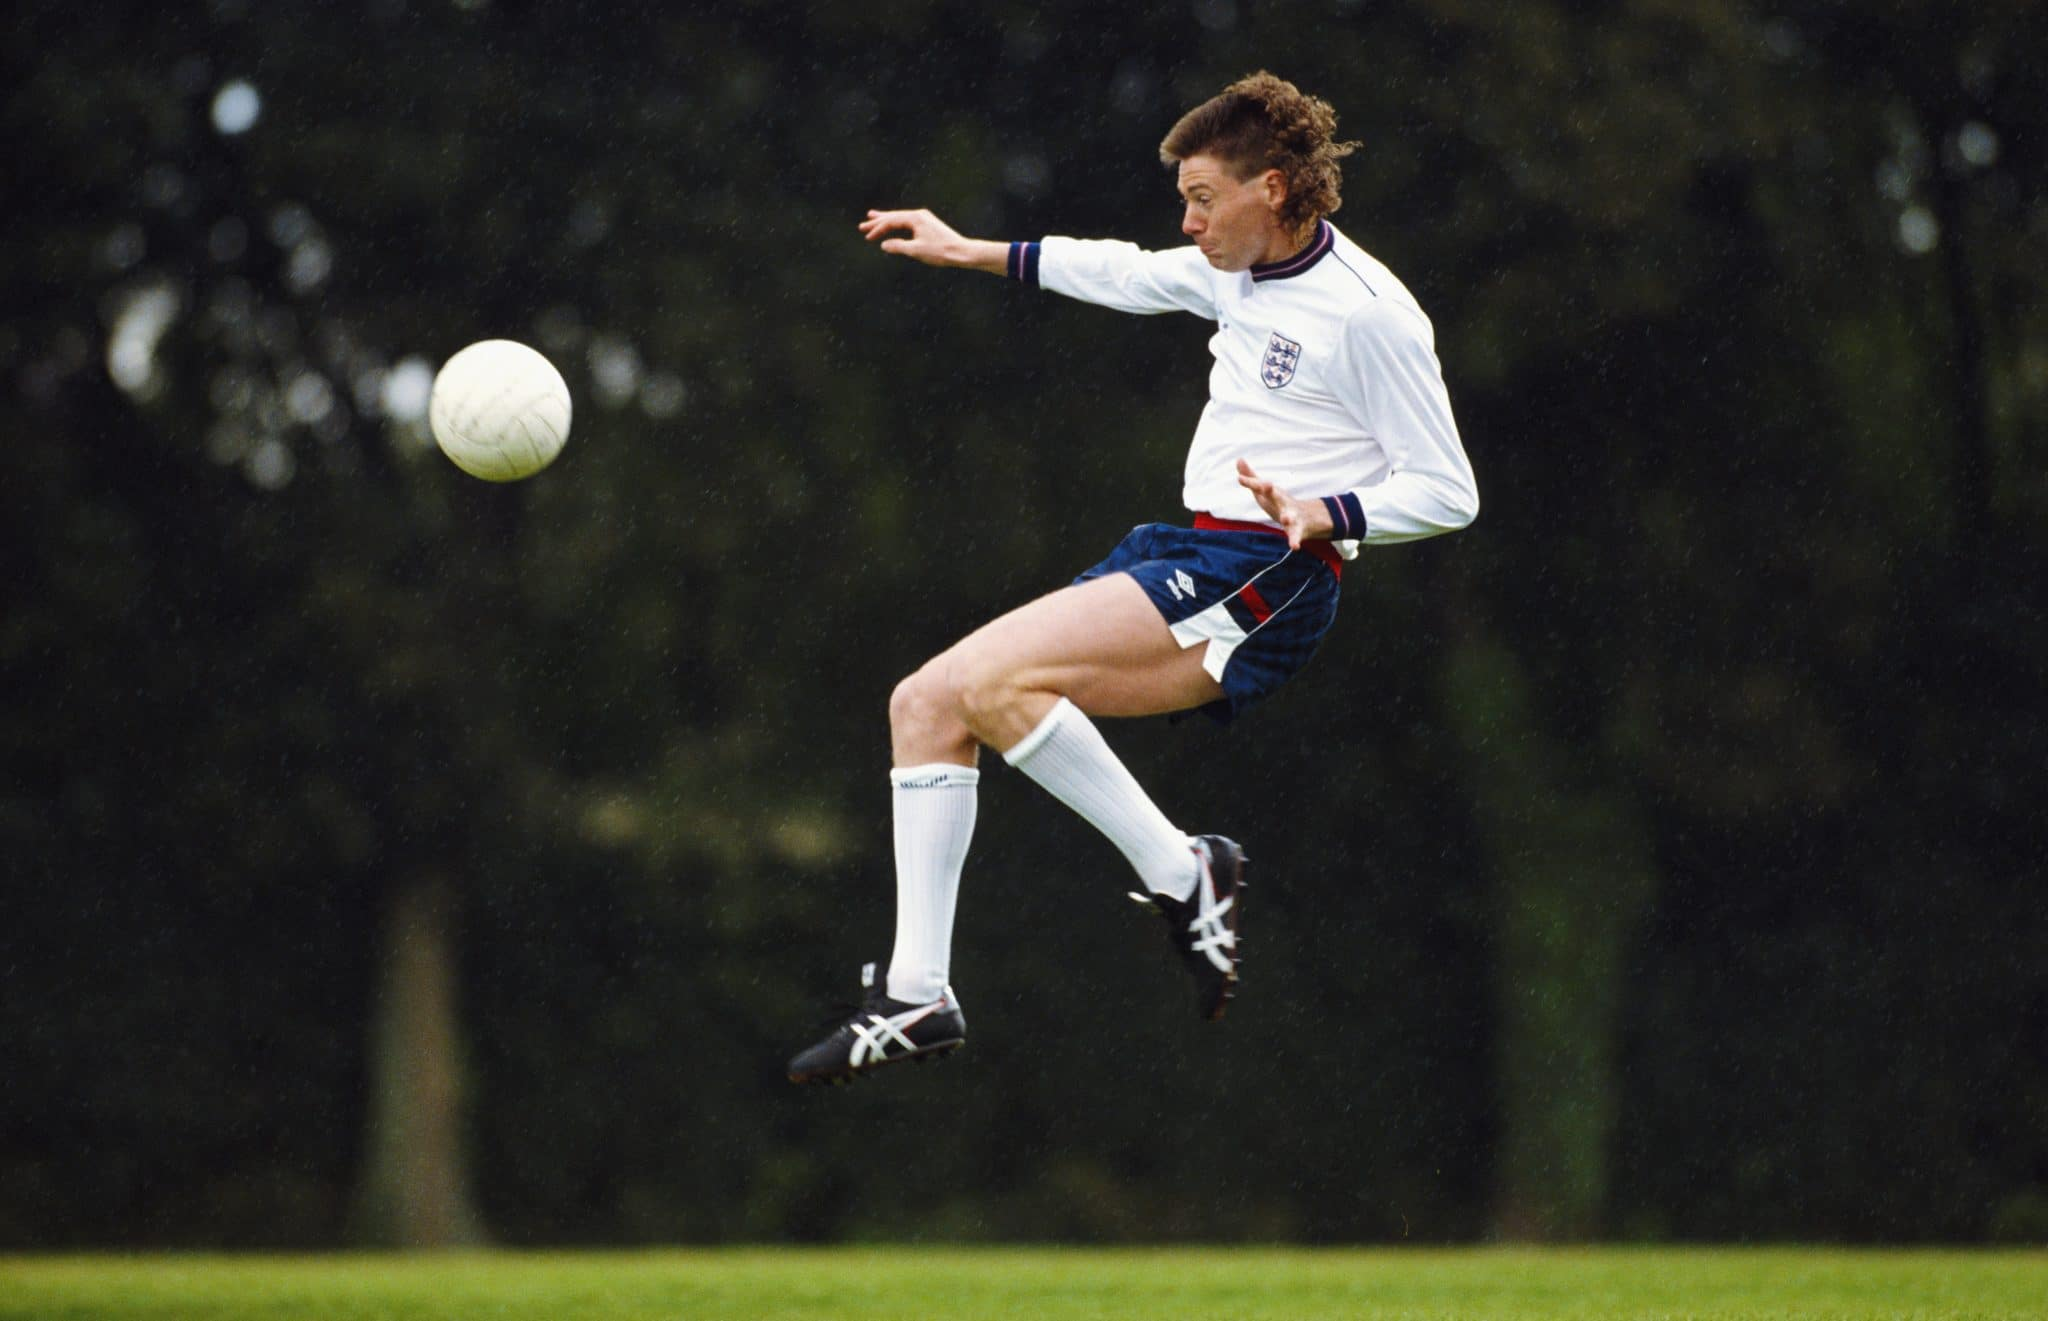 Former England and Tottenham Hotspur player Chris Waddle